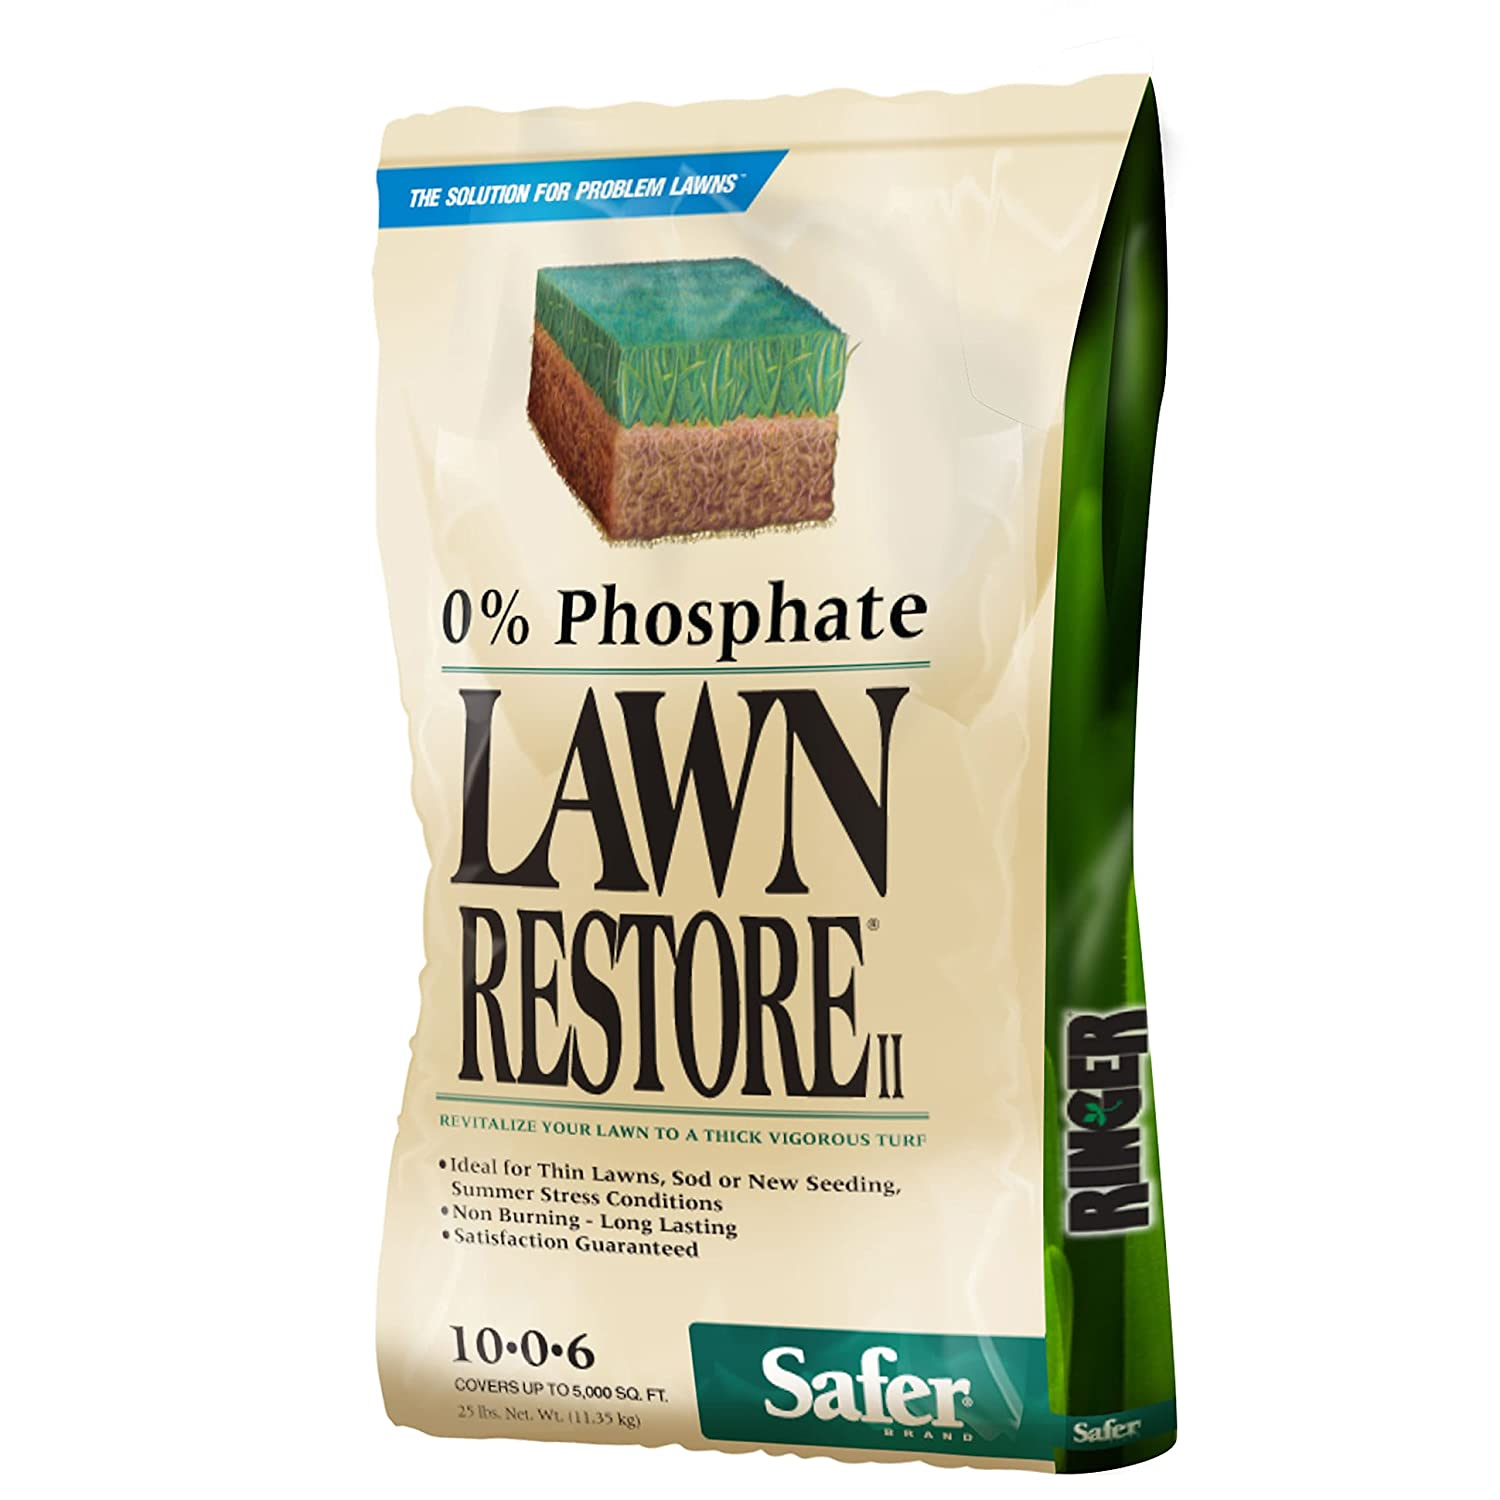 Ringer Lawn Fertilizer has 0% phosphate great for spring lawns